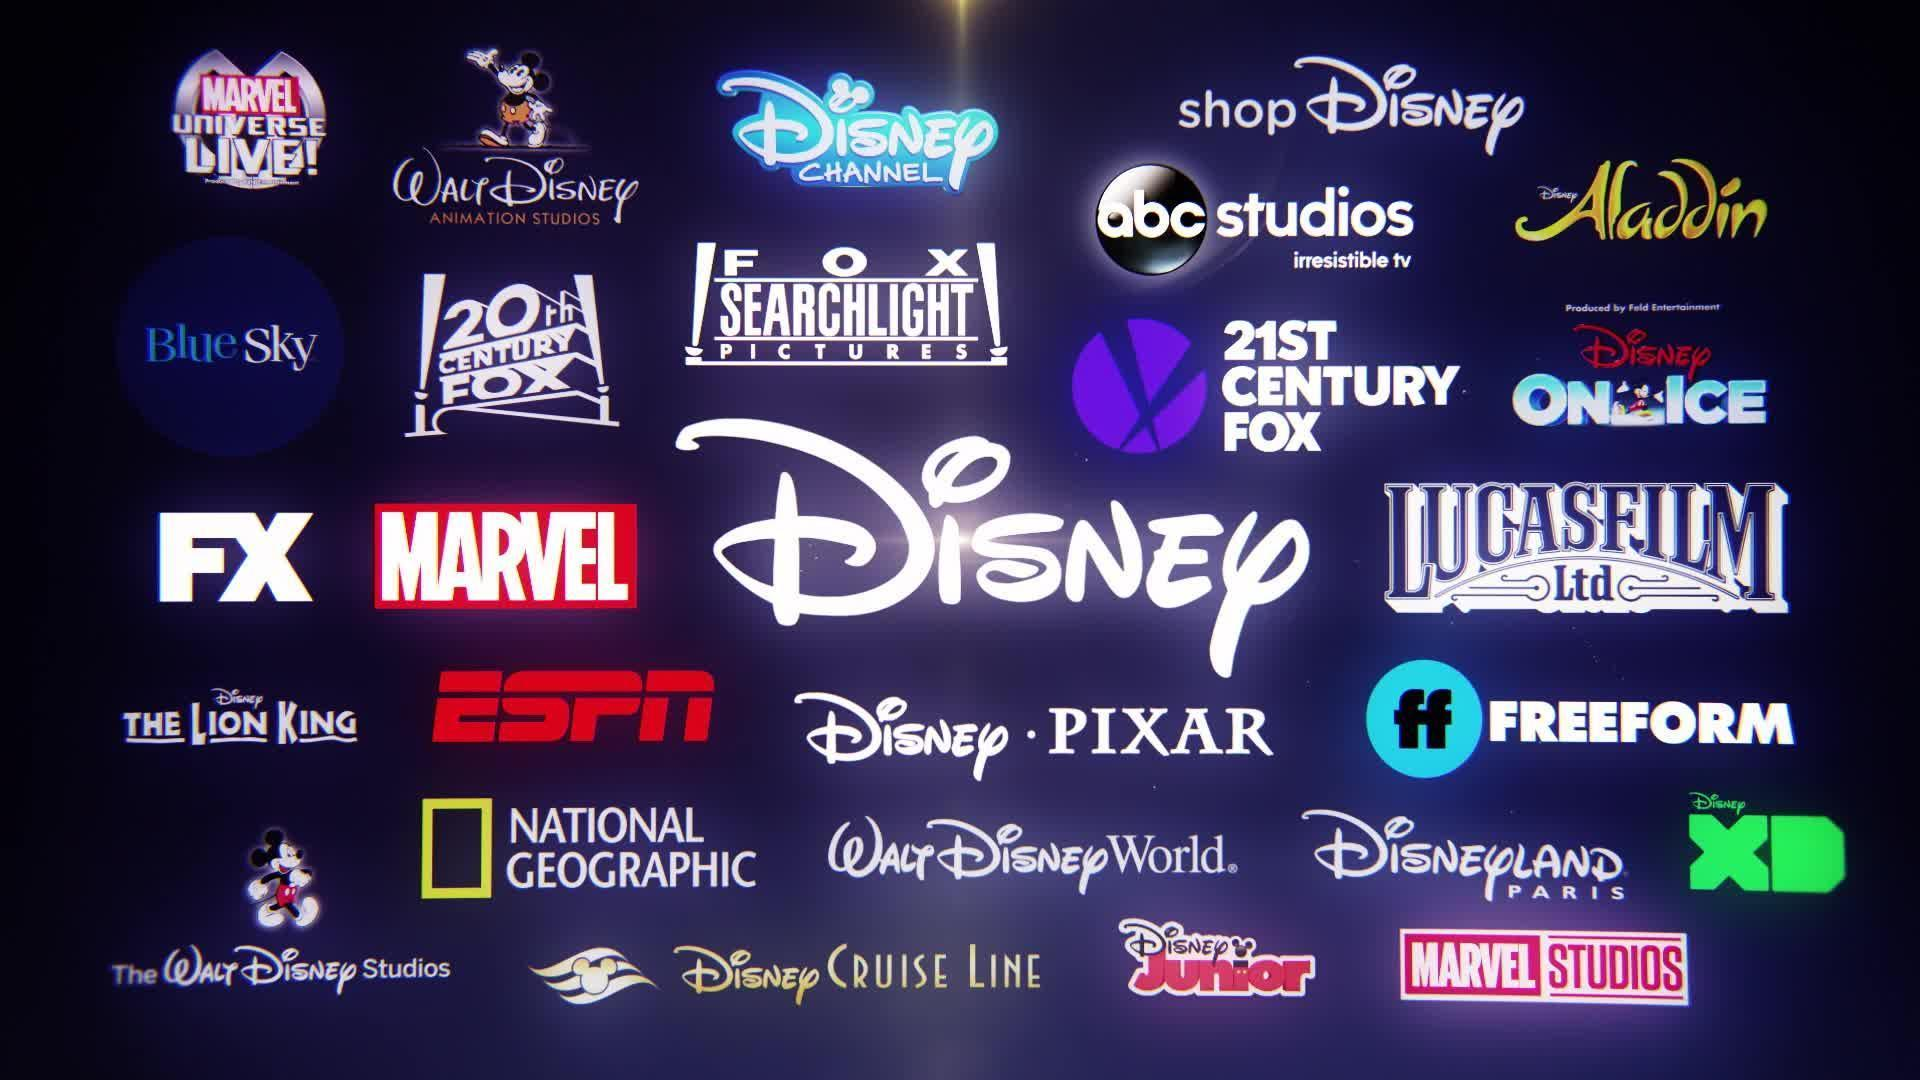 About Us - The Walt Disney Family of Companies Video (ME EN)